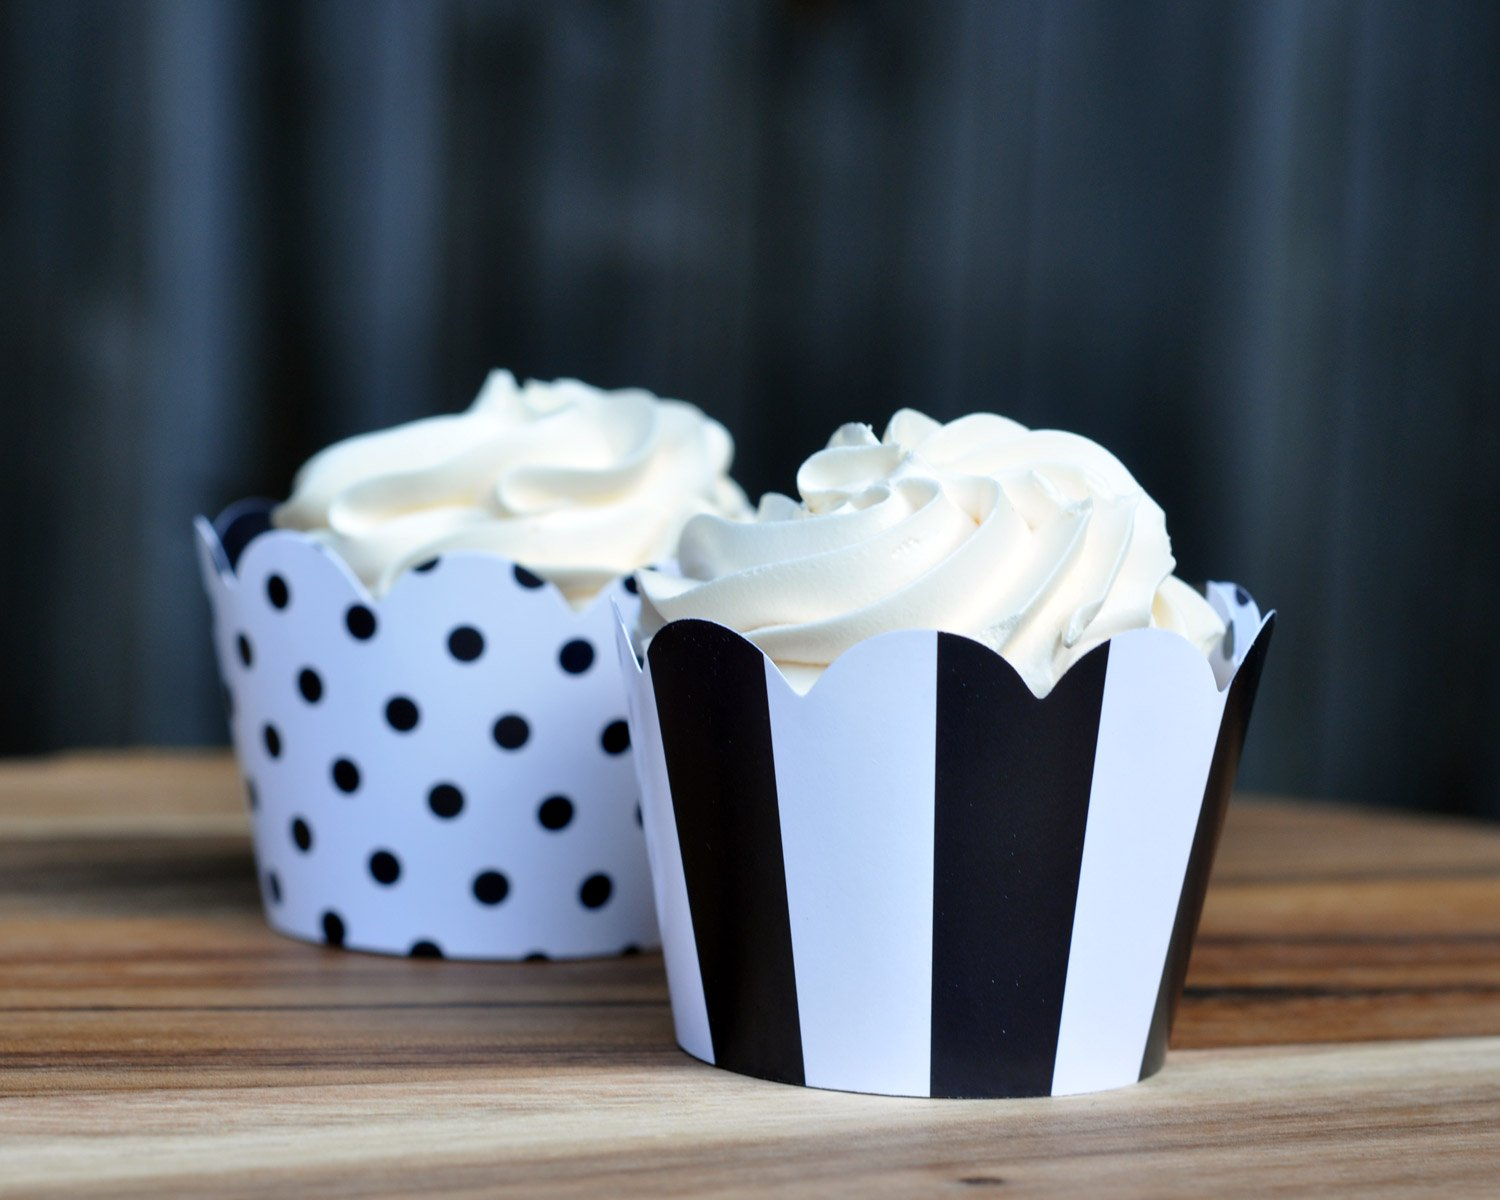 Black and White Cupcake Wrappers for Weddings, Graduations, Kids and Adult Birthday Parties, Baby Showers. Set of 24 Reversible Cup Cake Holder Wraps with Polka Dots and Stripes. Black, White by Toula Products (Image #3)